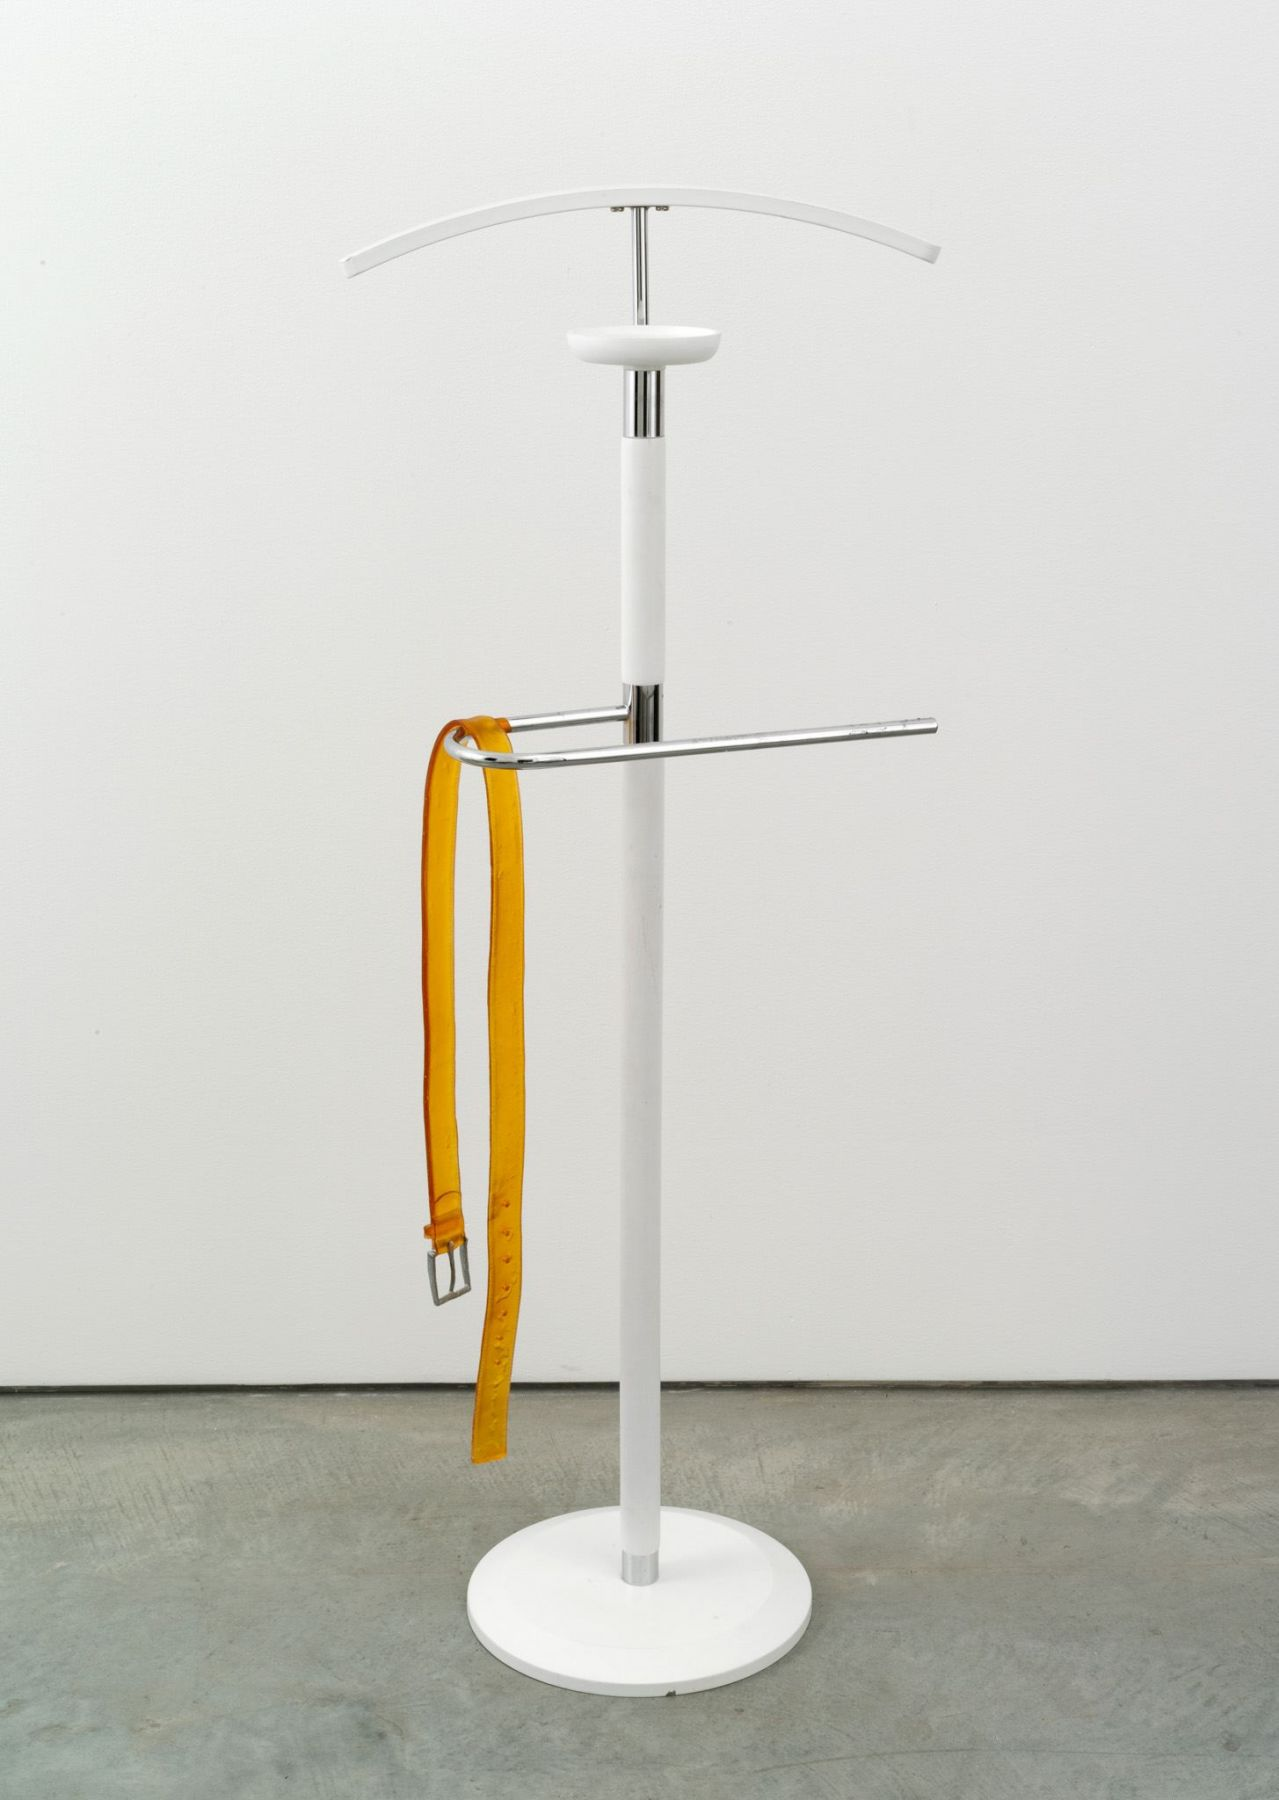 Valentin Carron, Belt on valet stand, 2014